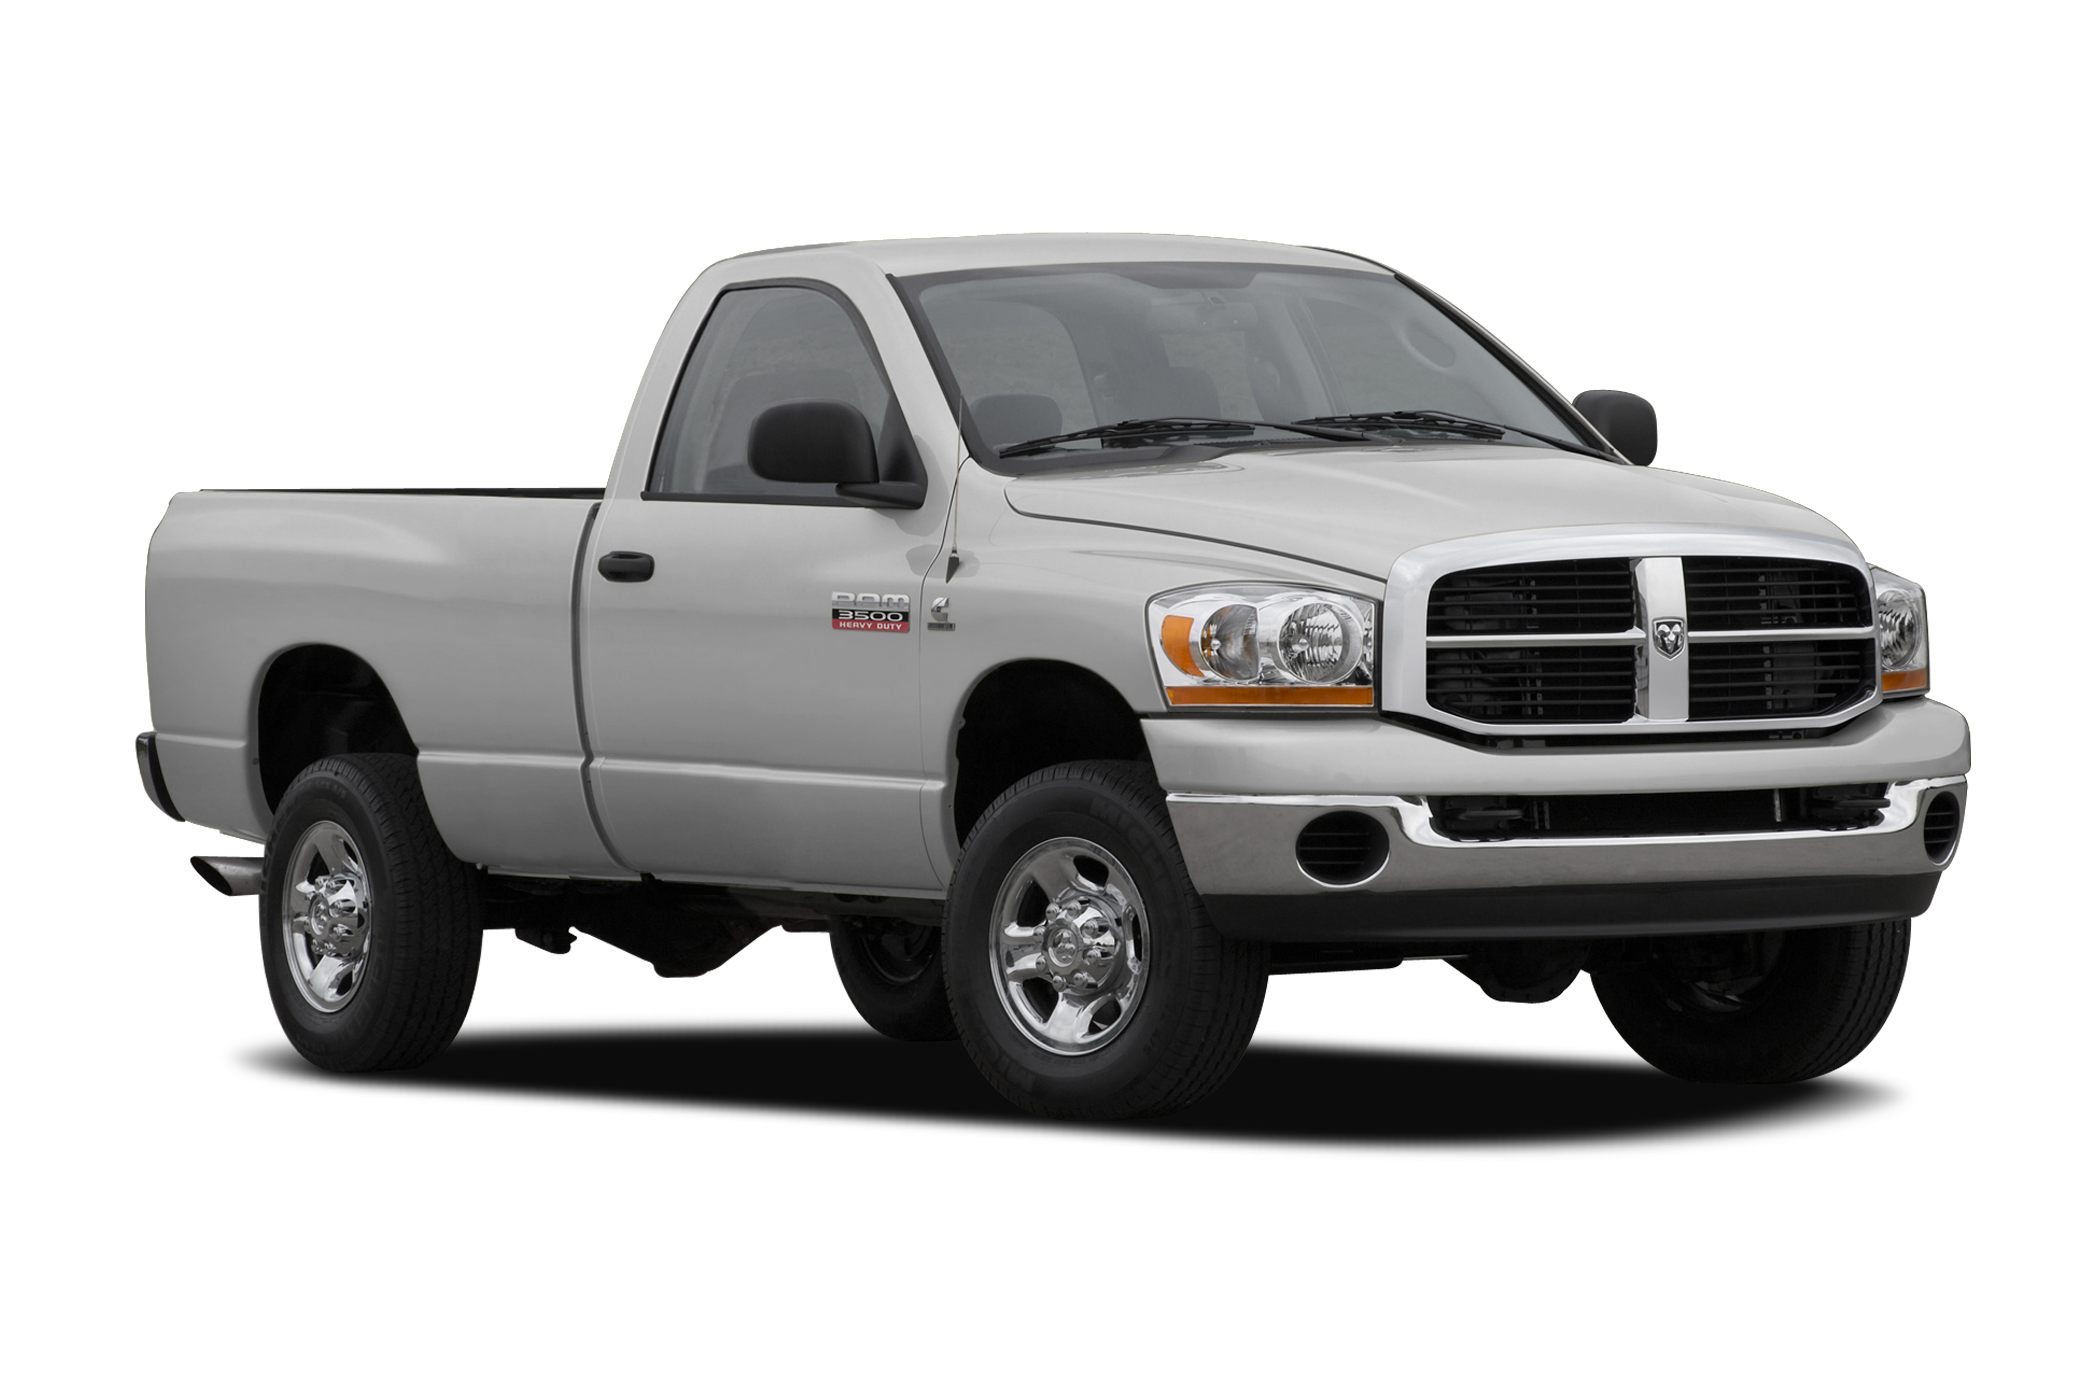 2008 dodge ram 2500 cummins towing capacity